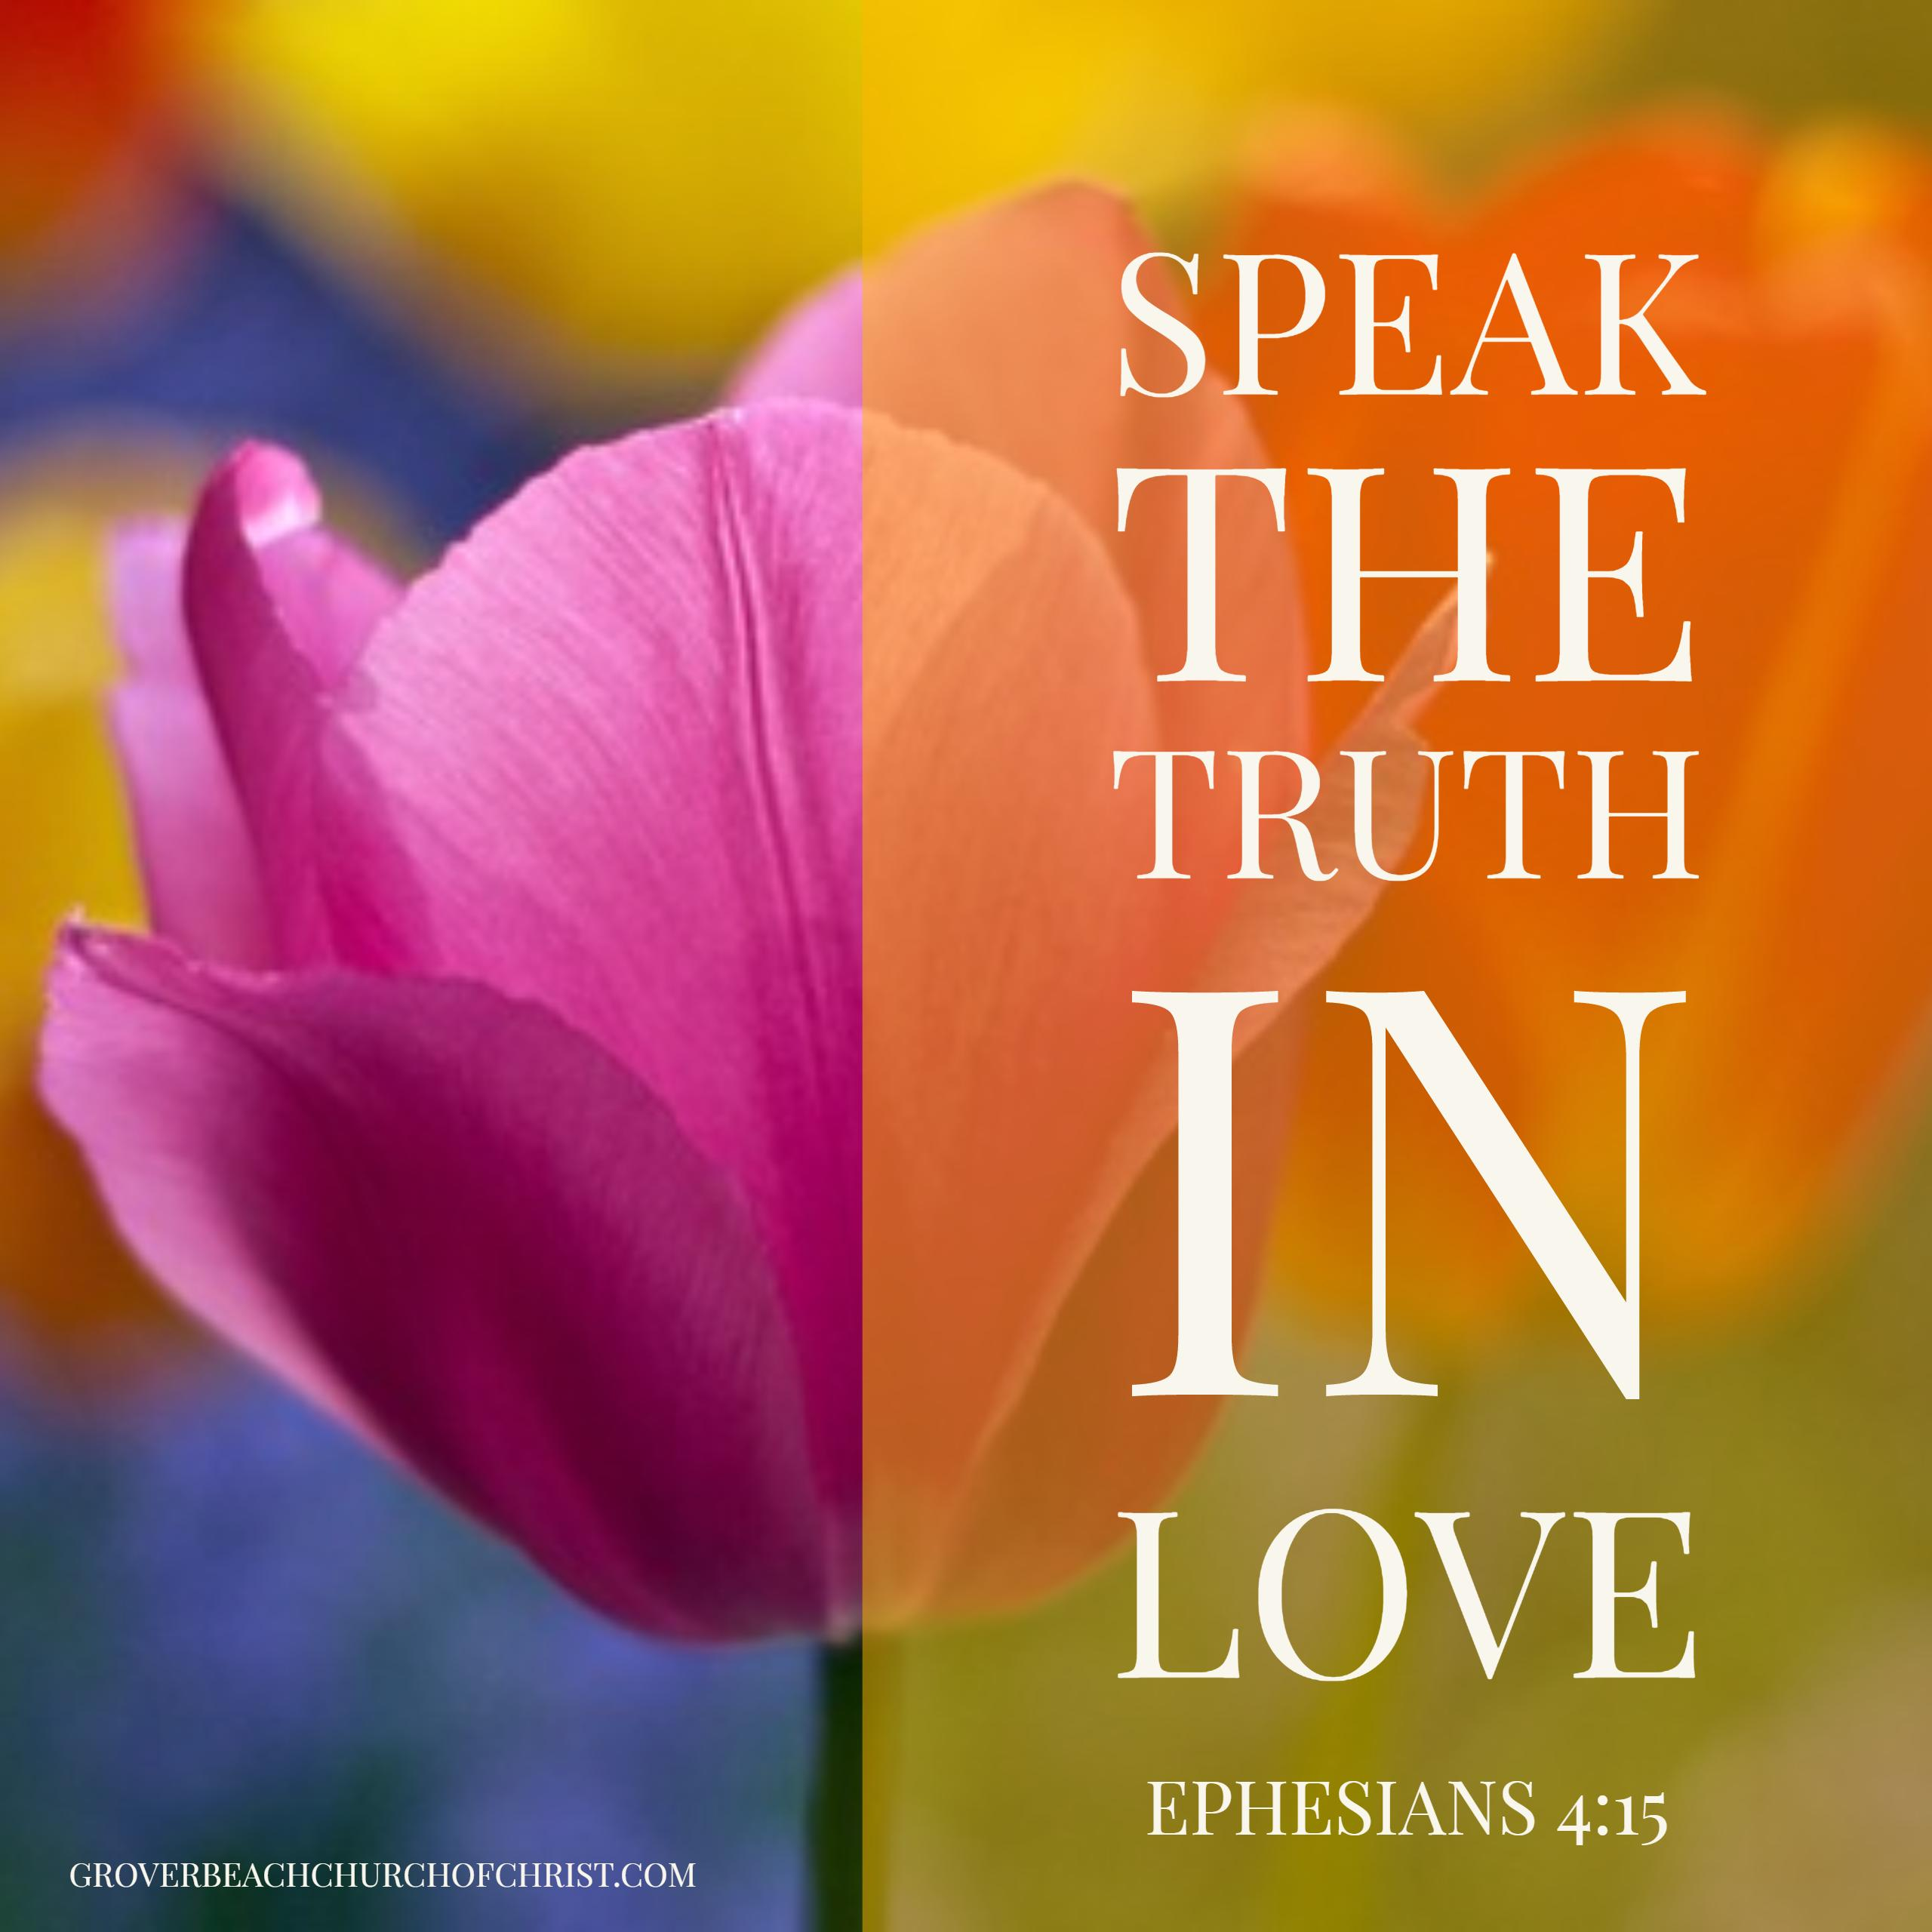 Ephesians 4-15 Speak the truth in love